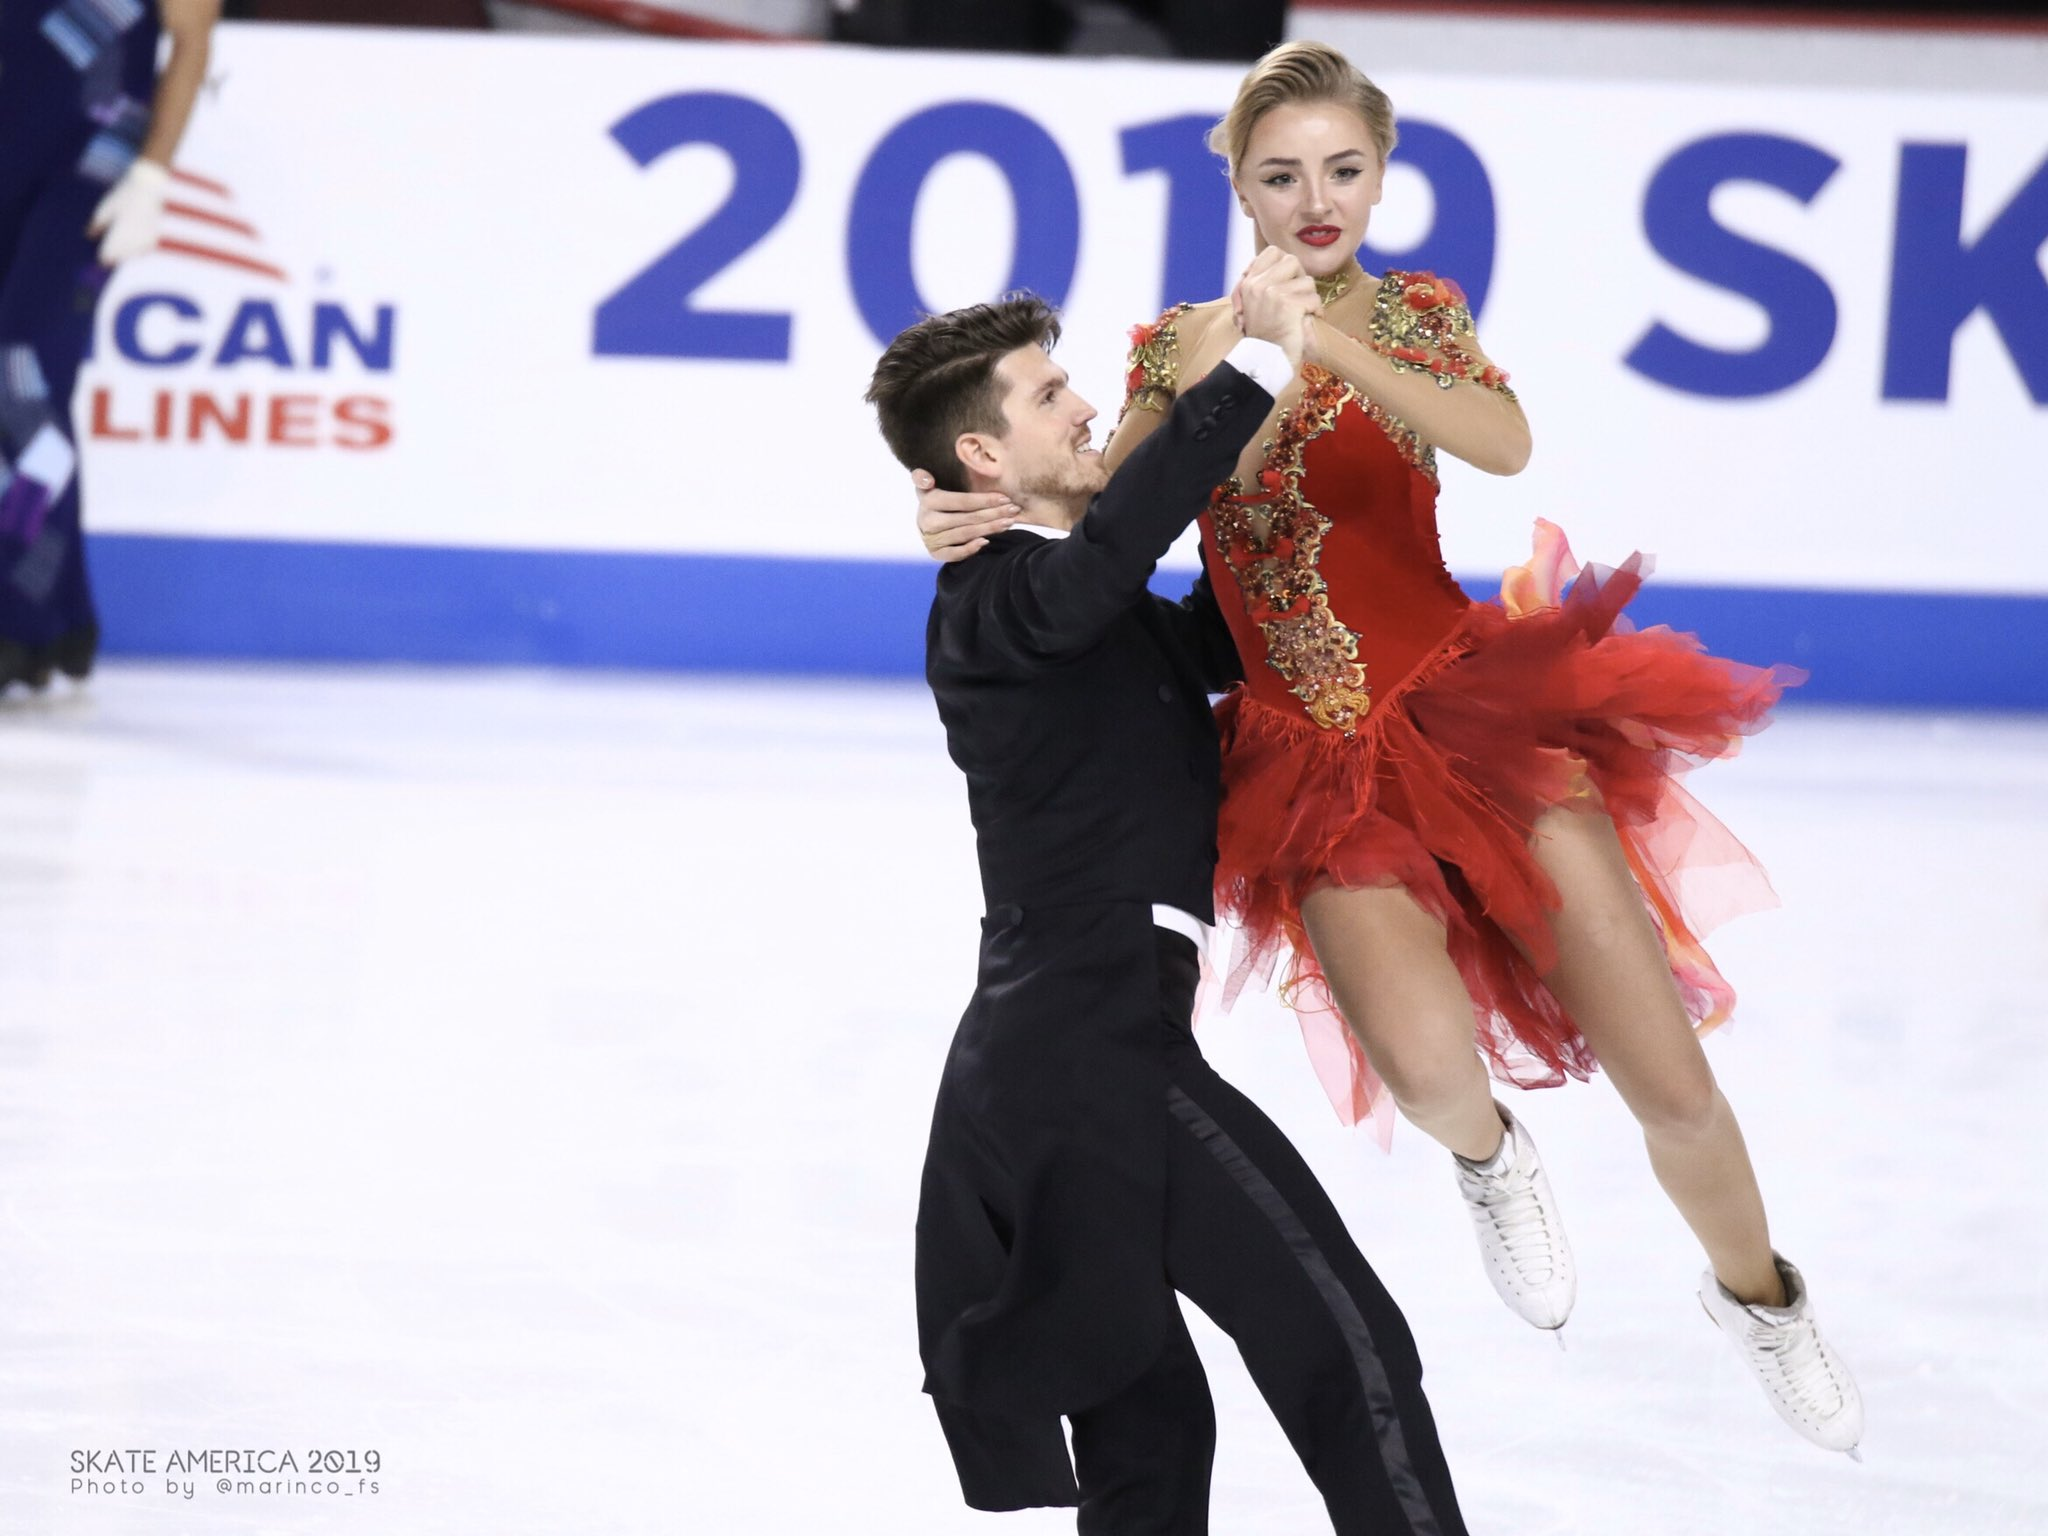 GP - 1 этап. Skate America Las Vegas, NV / USA October 18-20, 2019   - Страница 5 EHJQWaQUUAAaqiM?format=jpg&name=4096x4096